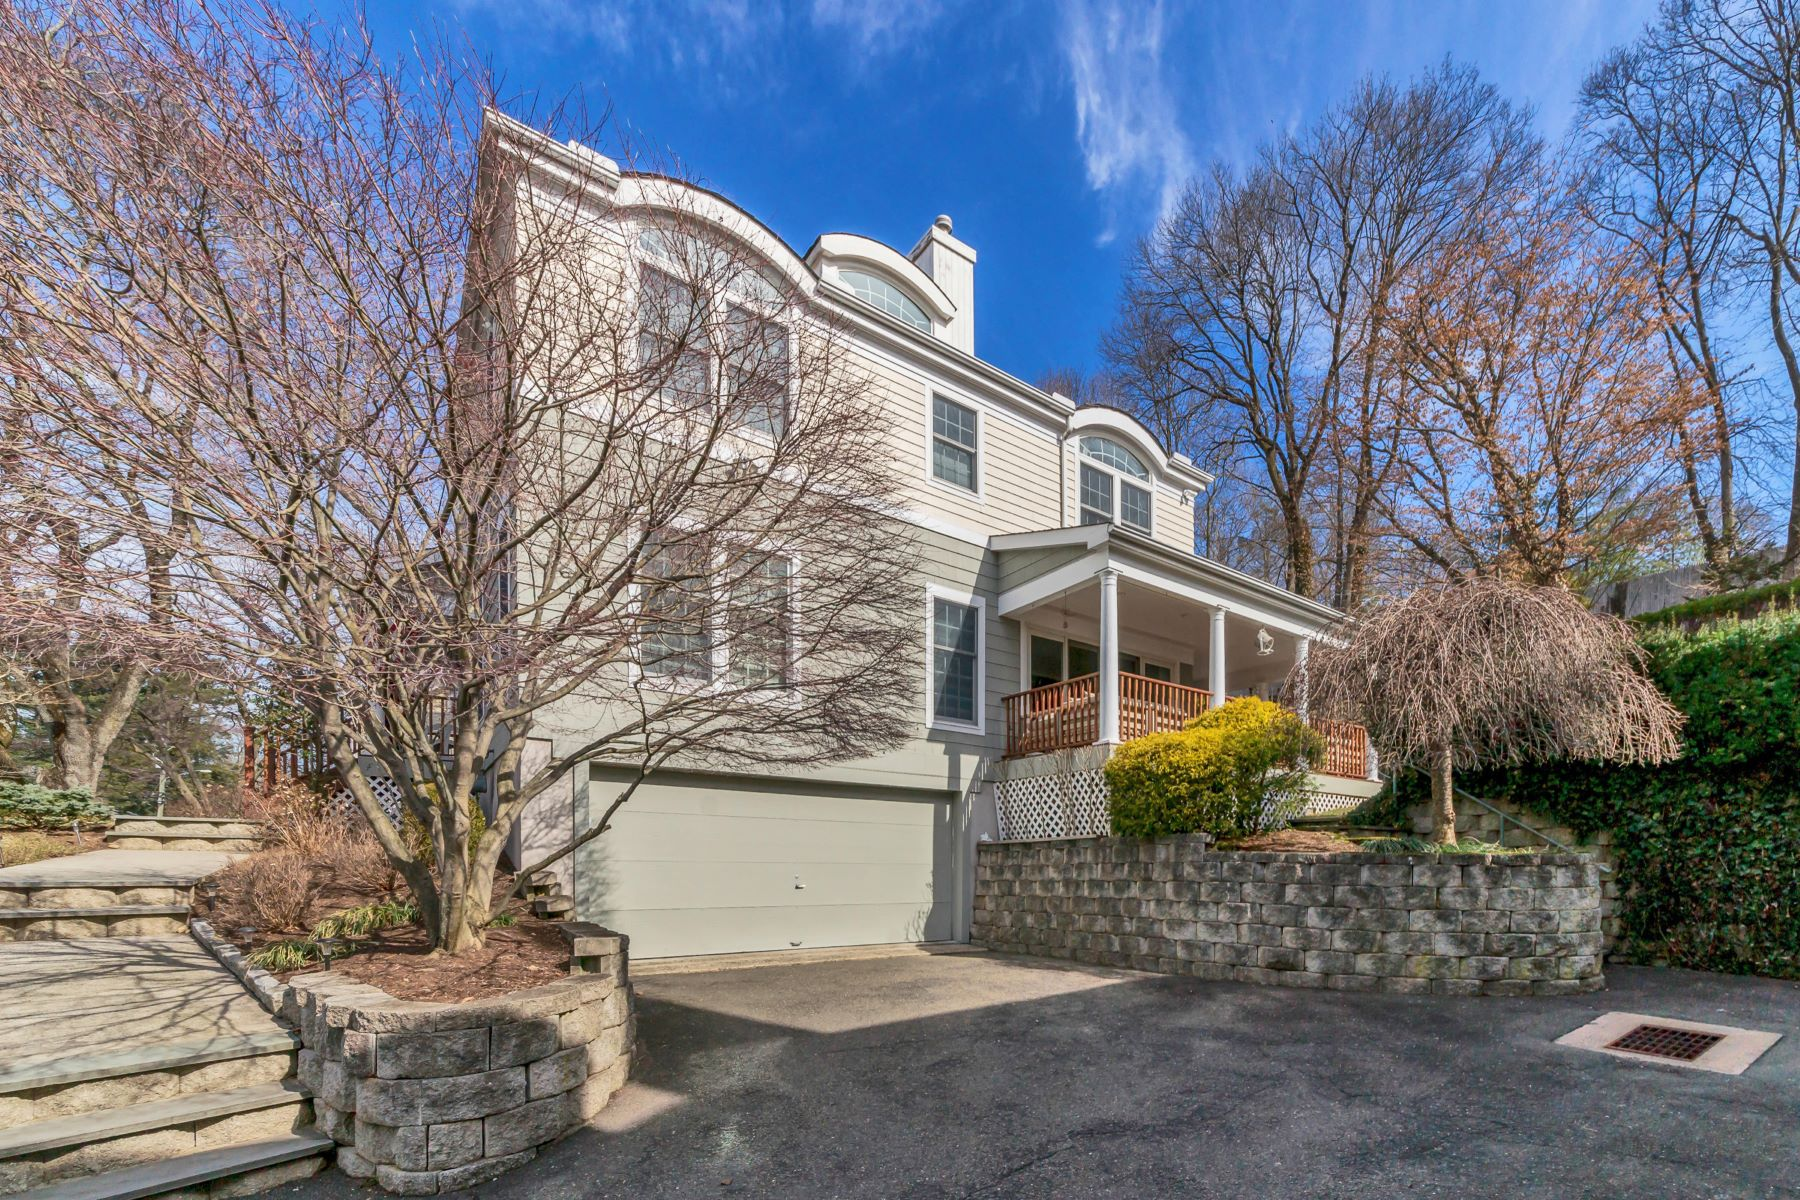 """Single Family Home for Sale at """"The Coolest House In Town"""" 41.5 East Avenue, Norwalk, Connecticut, 06851 United States"""